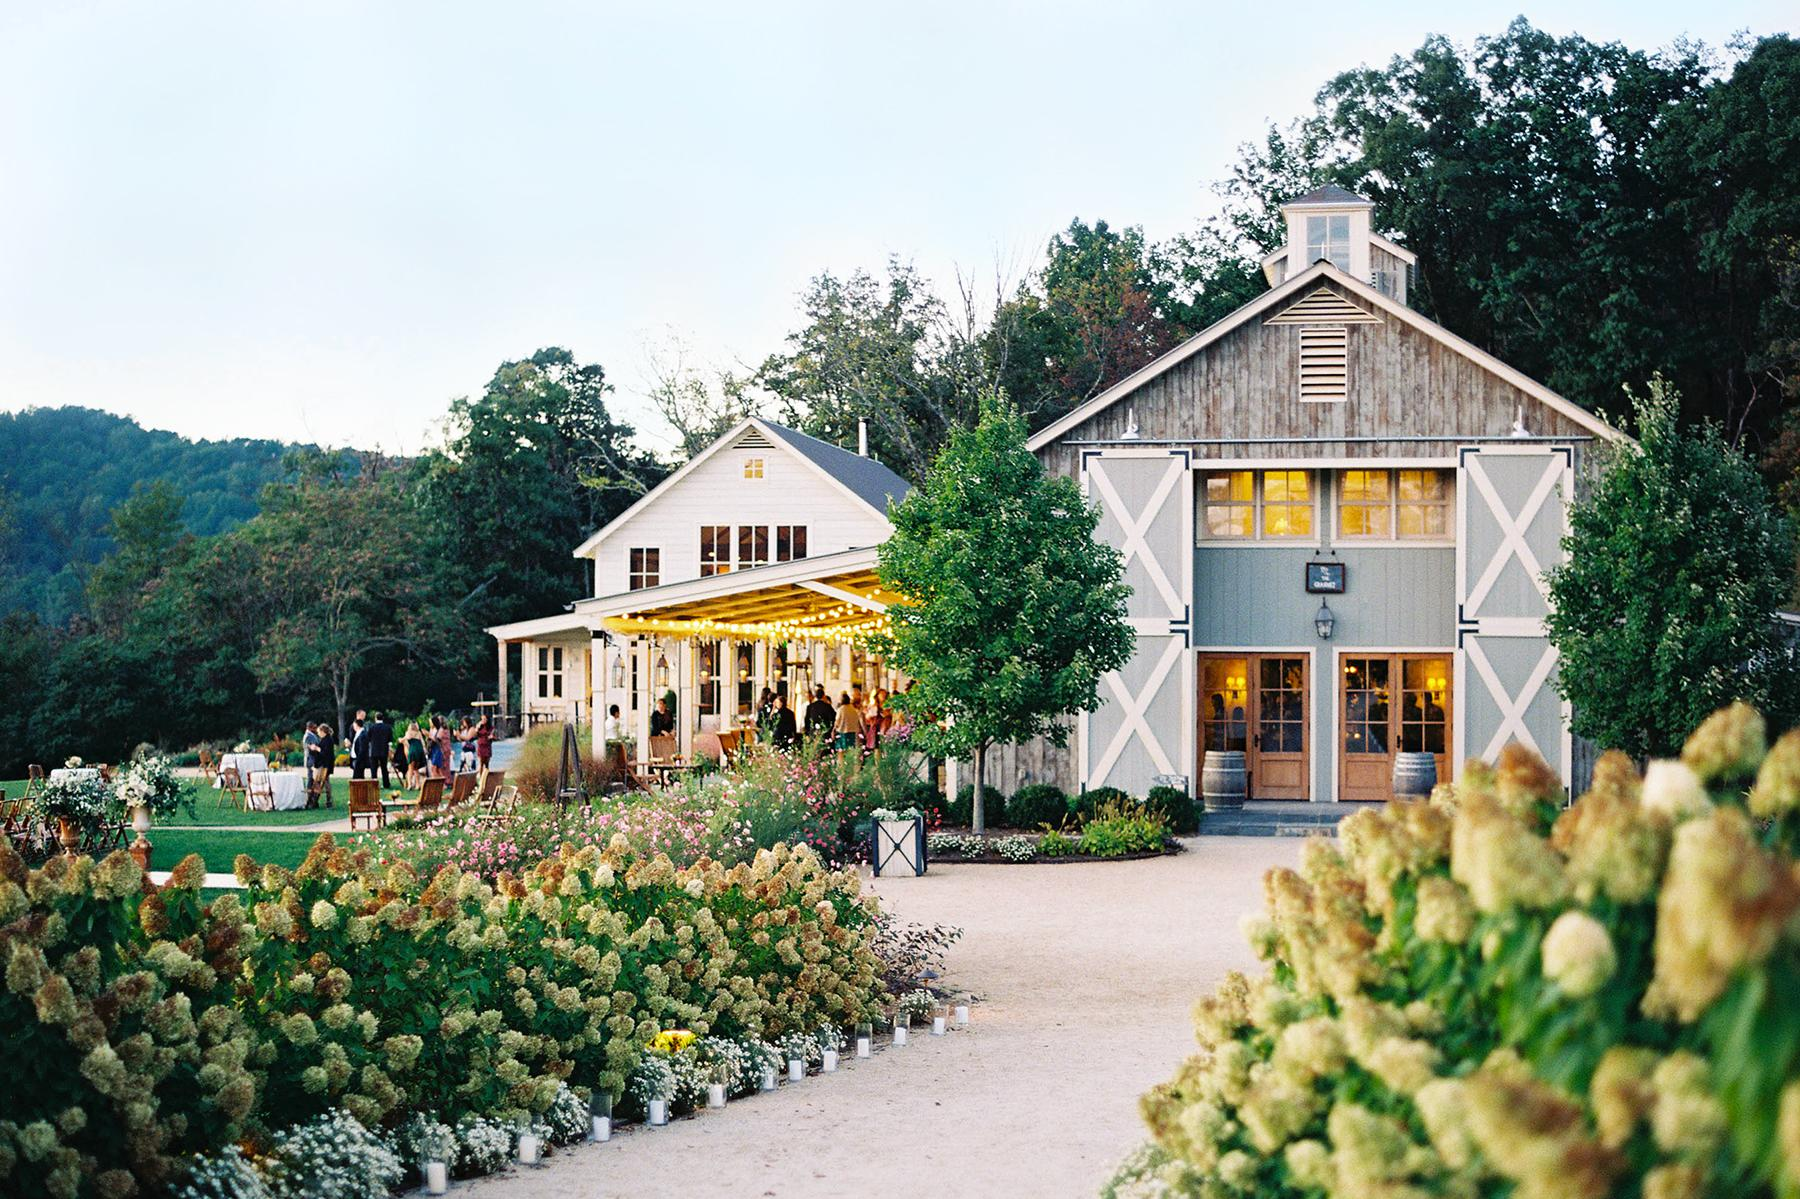 Rustic Destination Wedding Venues in the U.S.